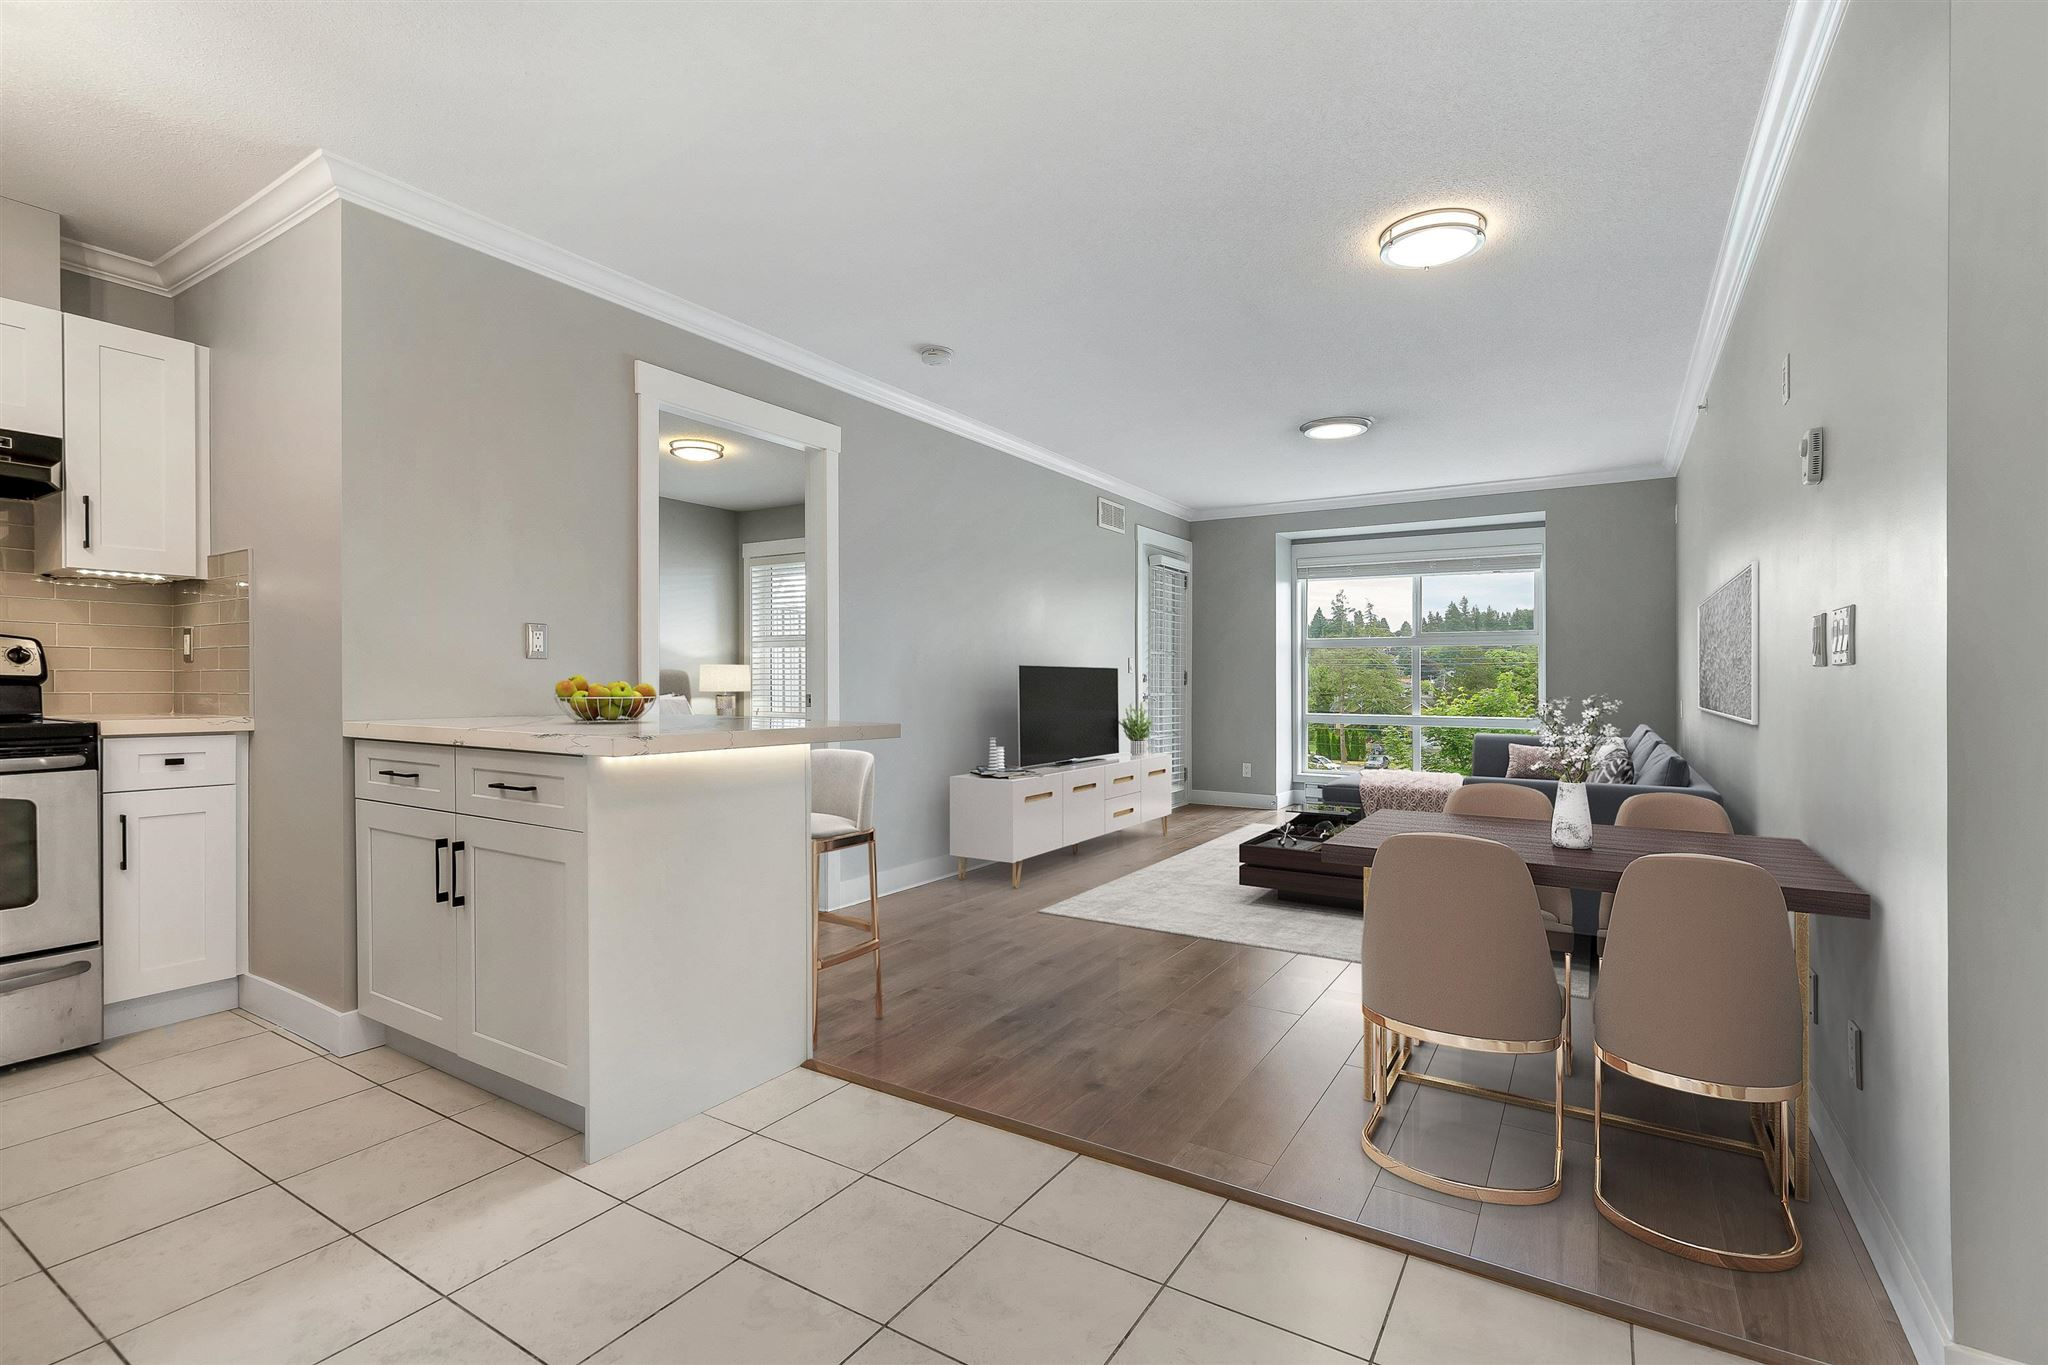 """Main Photo: 416 17769 57 Avenue in Surrey: Cloverdale BC Condo for sale in """"CLOVER DOWNS ESTATES"""" (Cloverdale)  : MLS®# R2601753"""